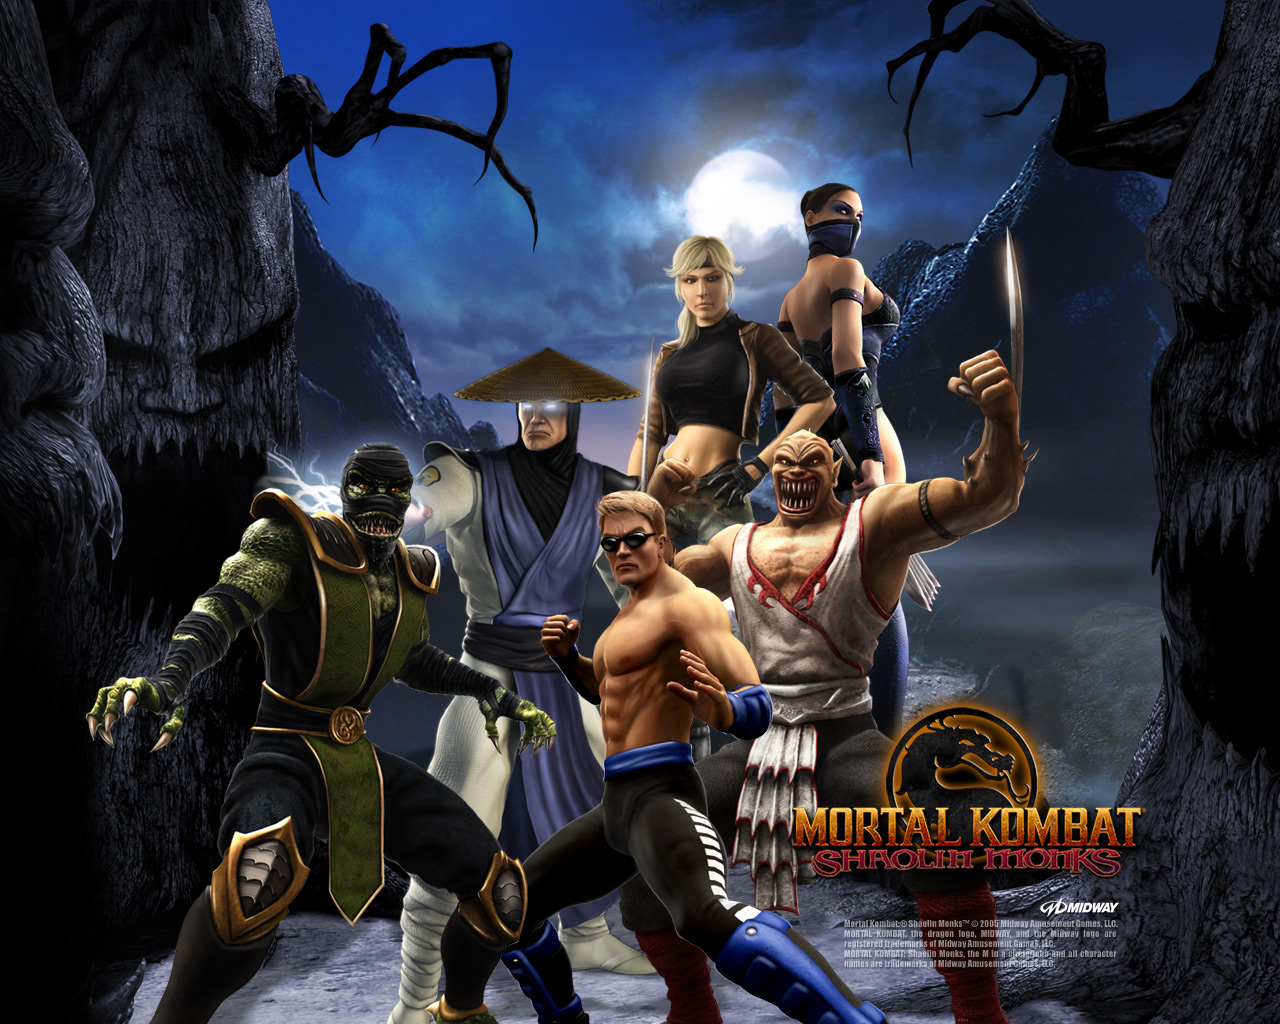 HD: MORTAL KOMBAT 13